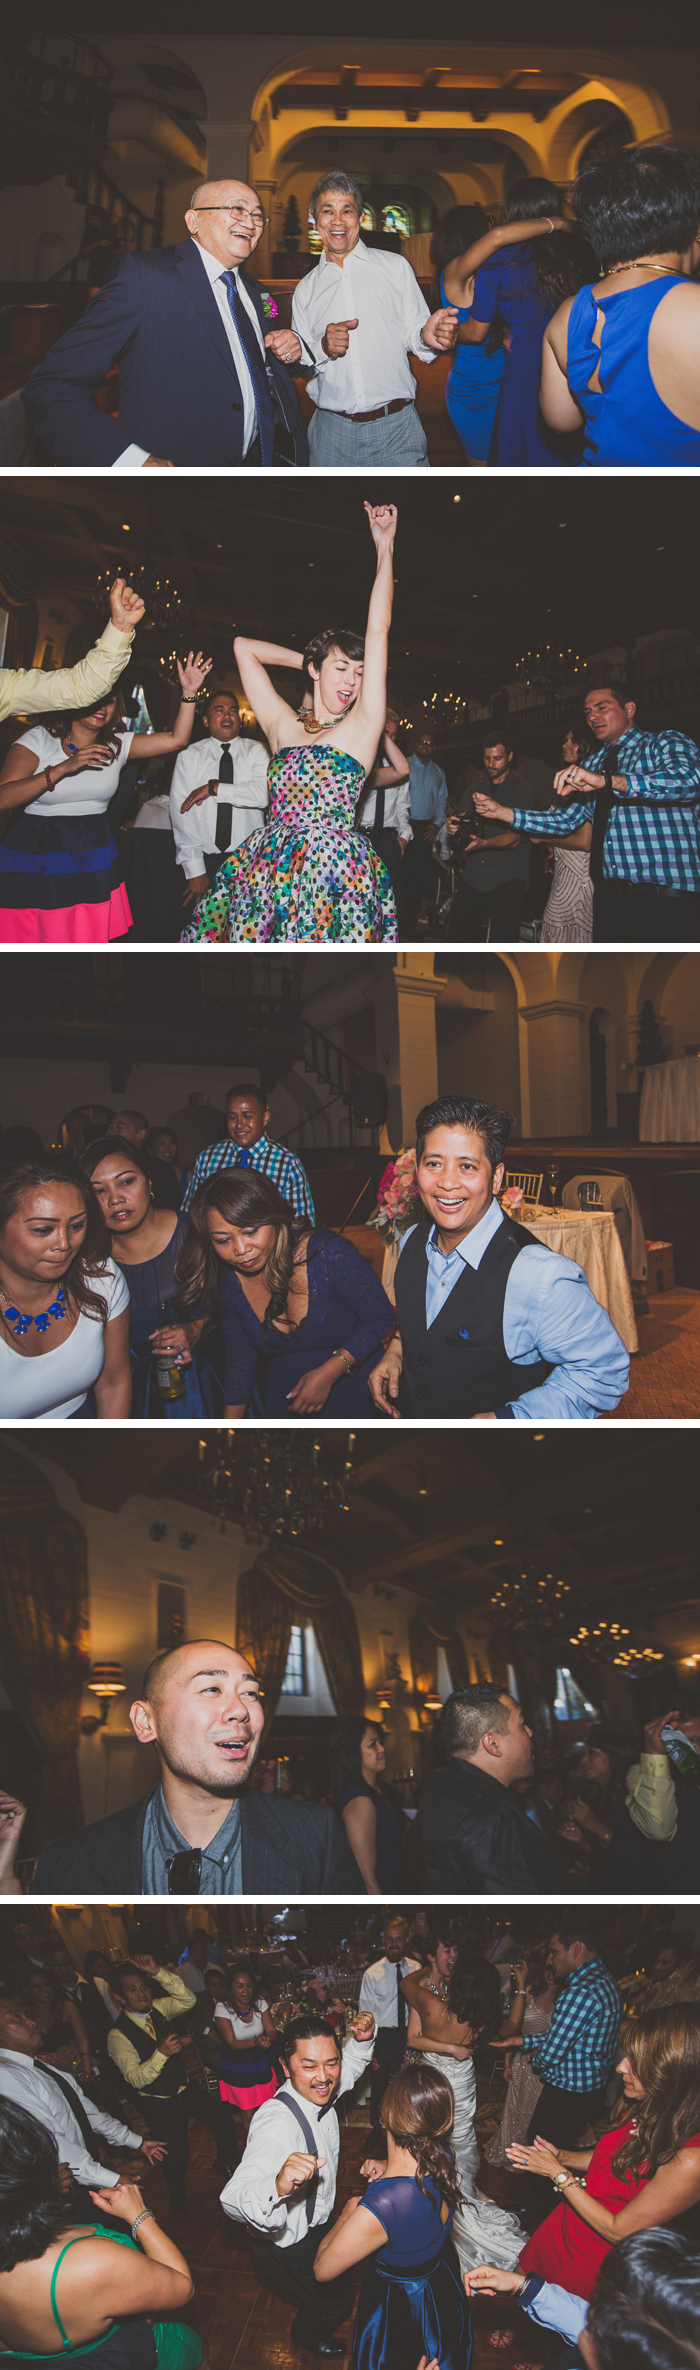 The Mission Inn Wedding Photography